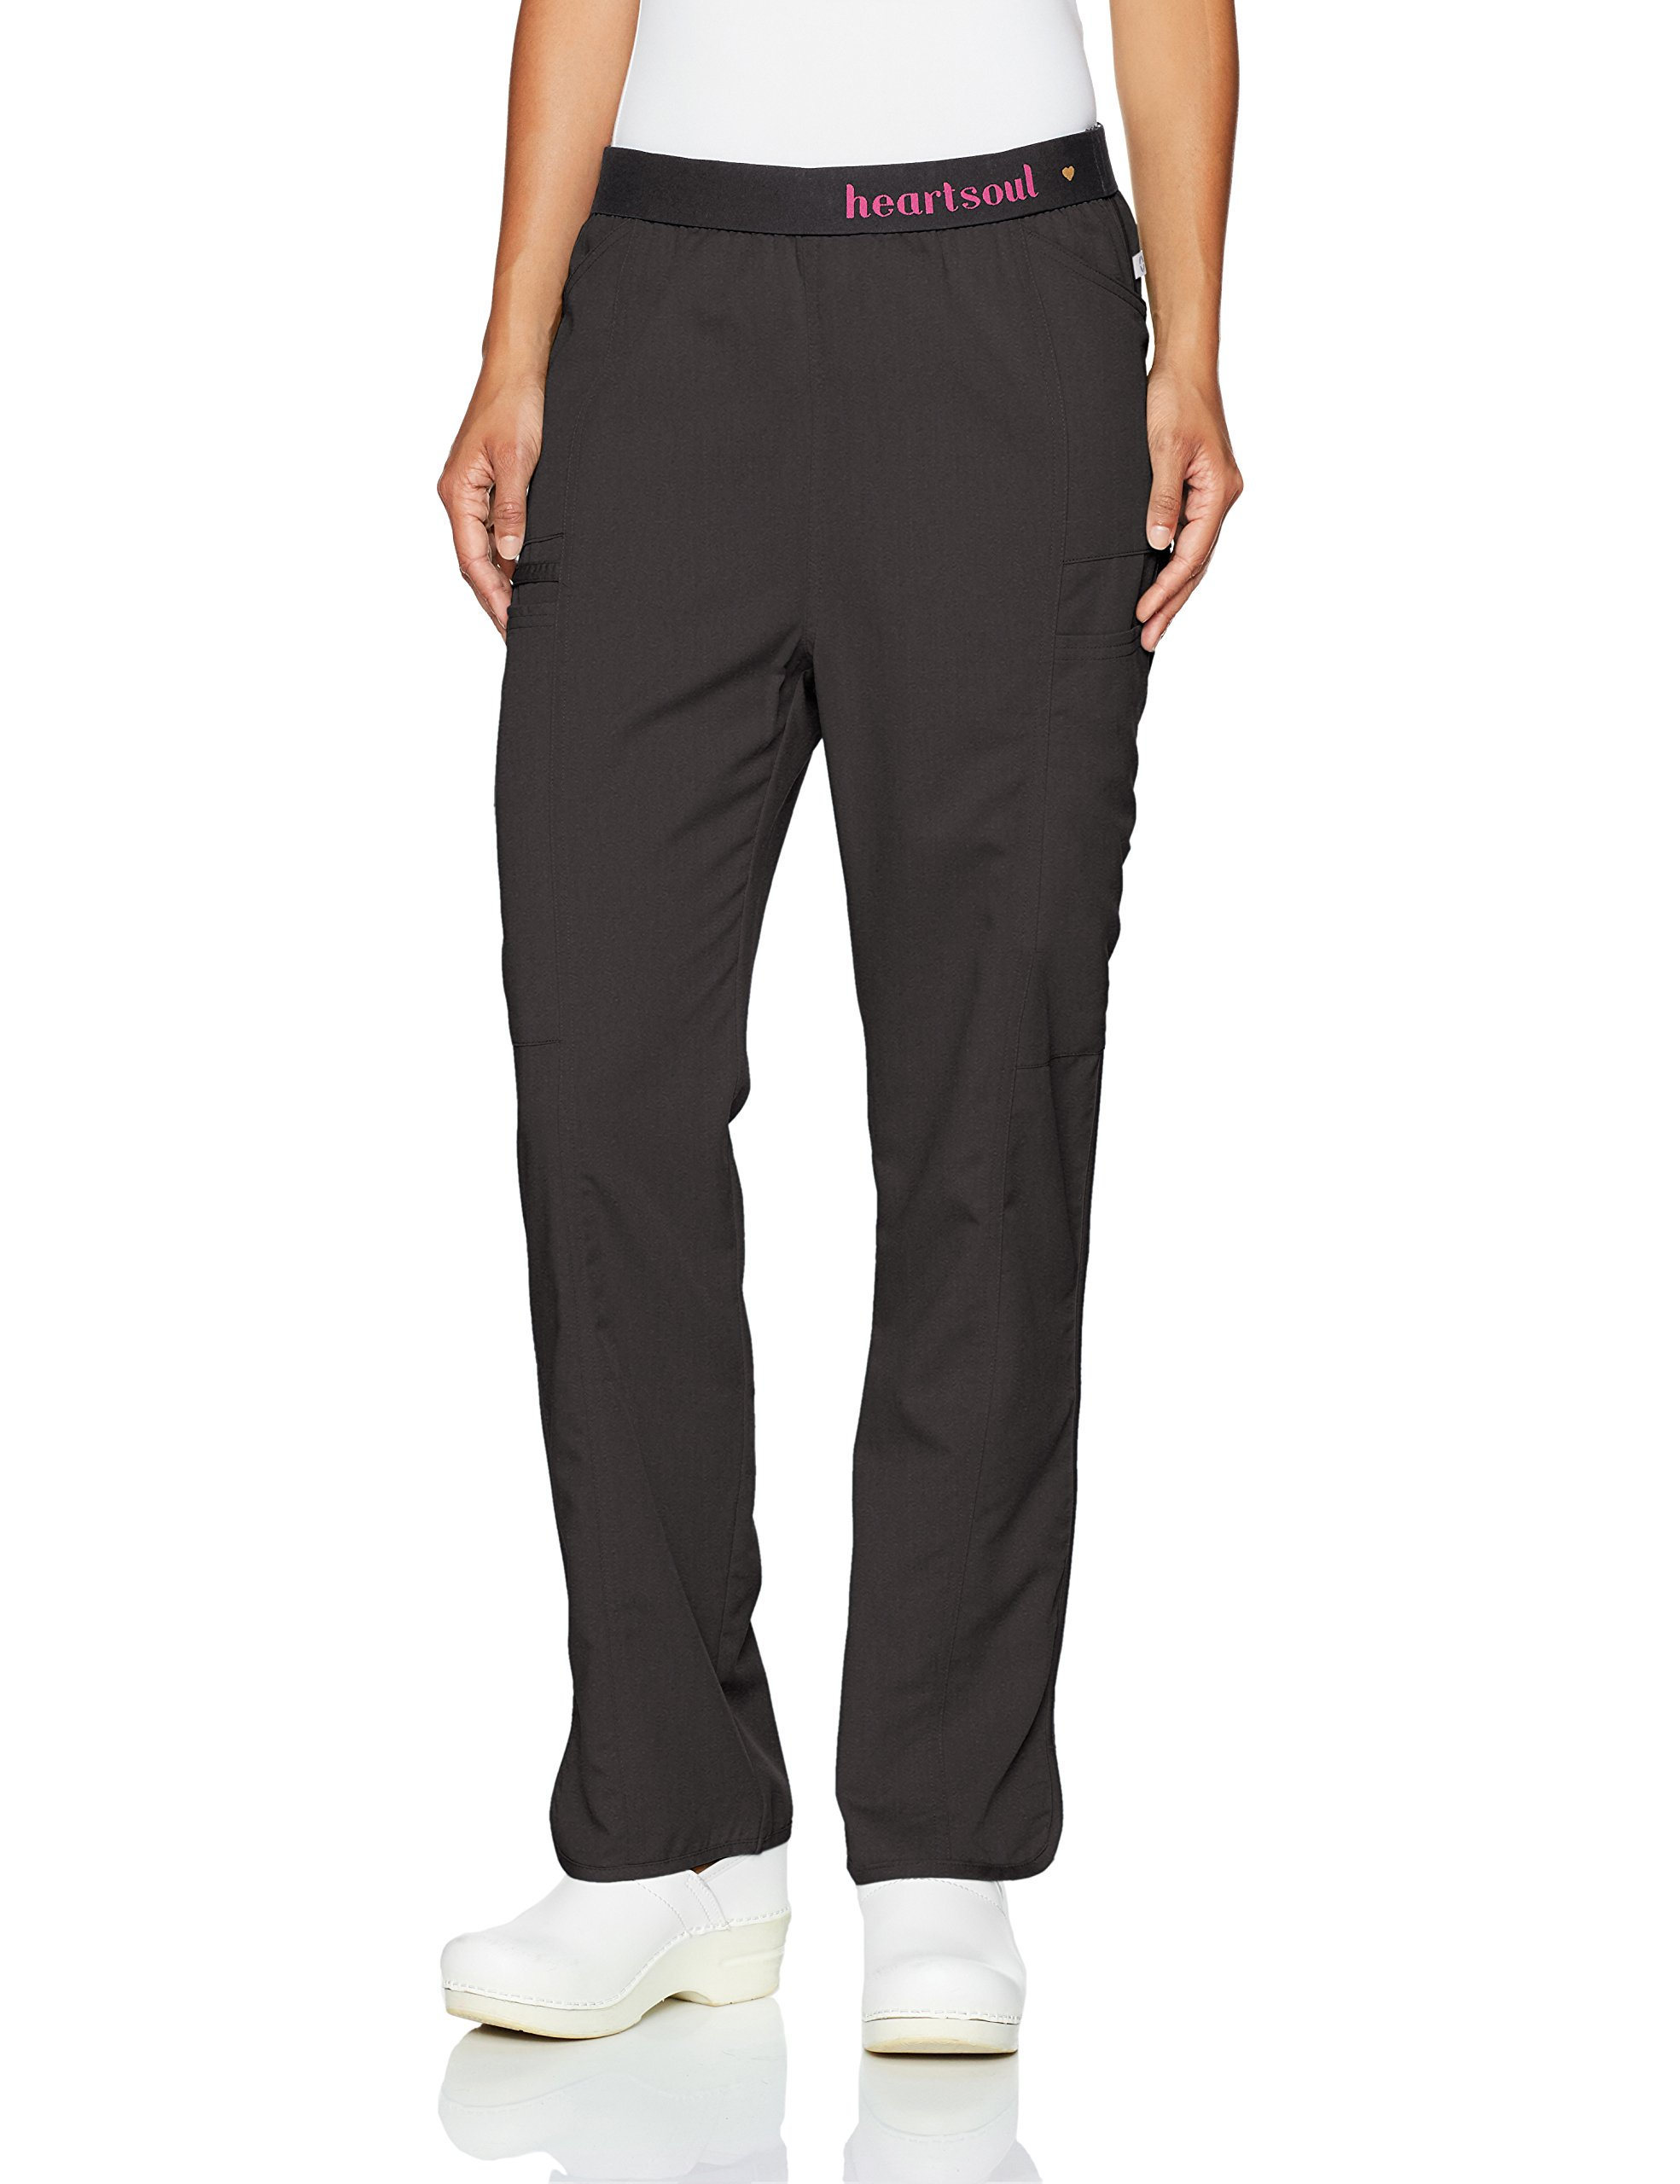 HeartSoul Scrubs Women's Head Over Heelsso in Love Low Rise Pull-on Pant, Black, XX-Small